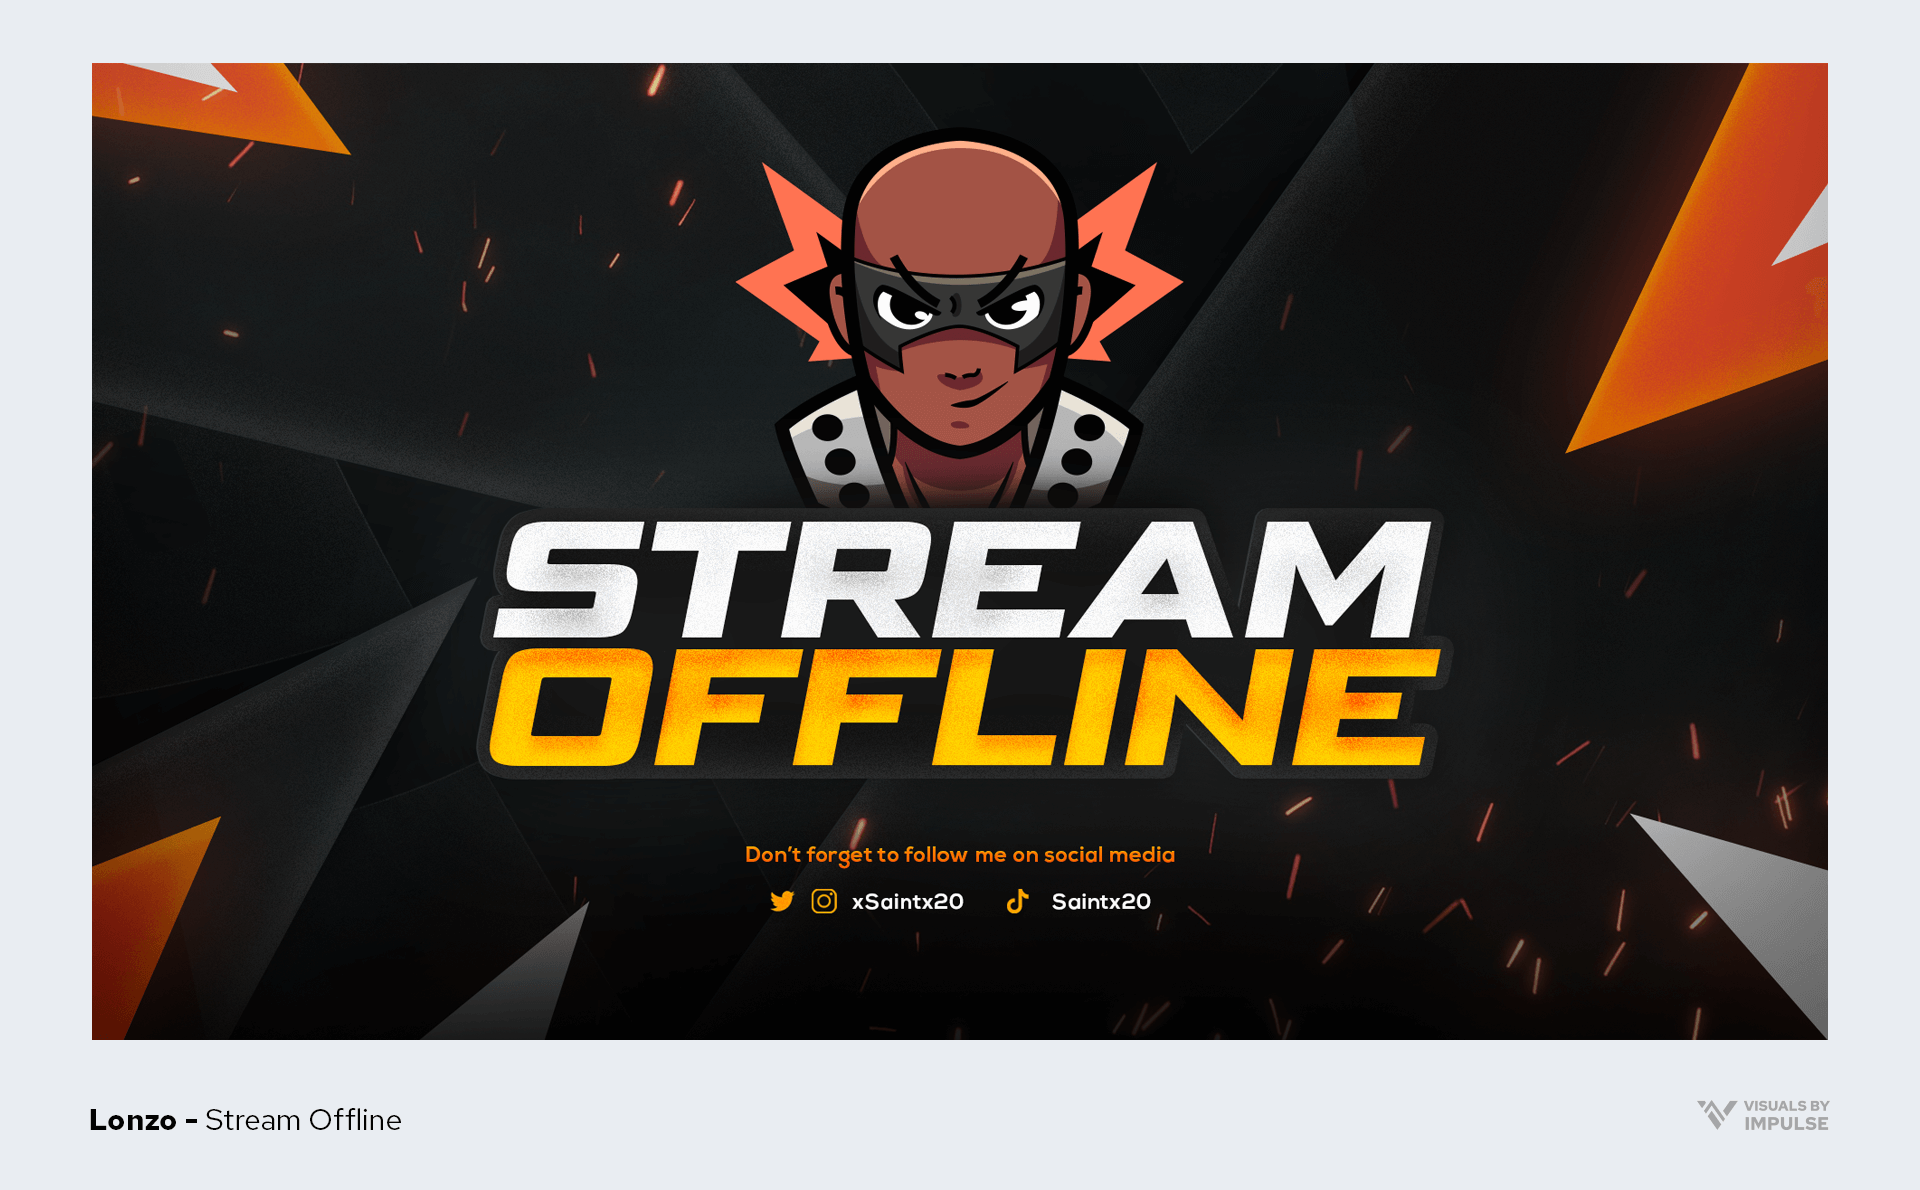 Lonzo example Twitch offline screen with anime character